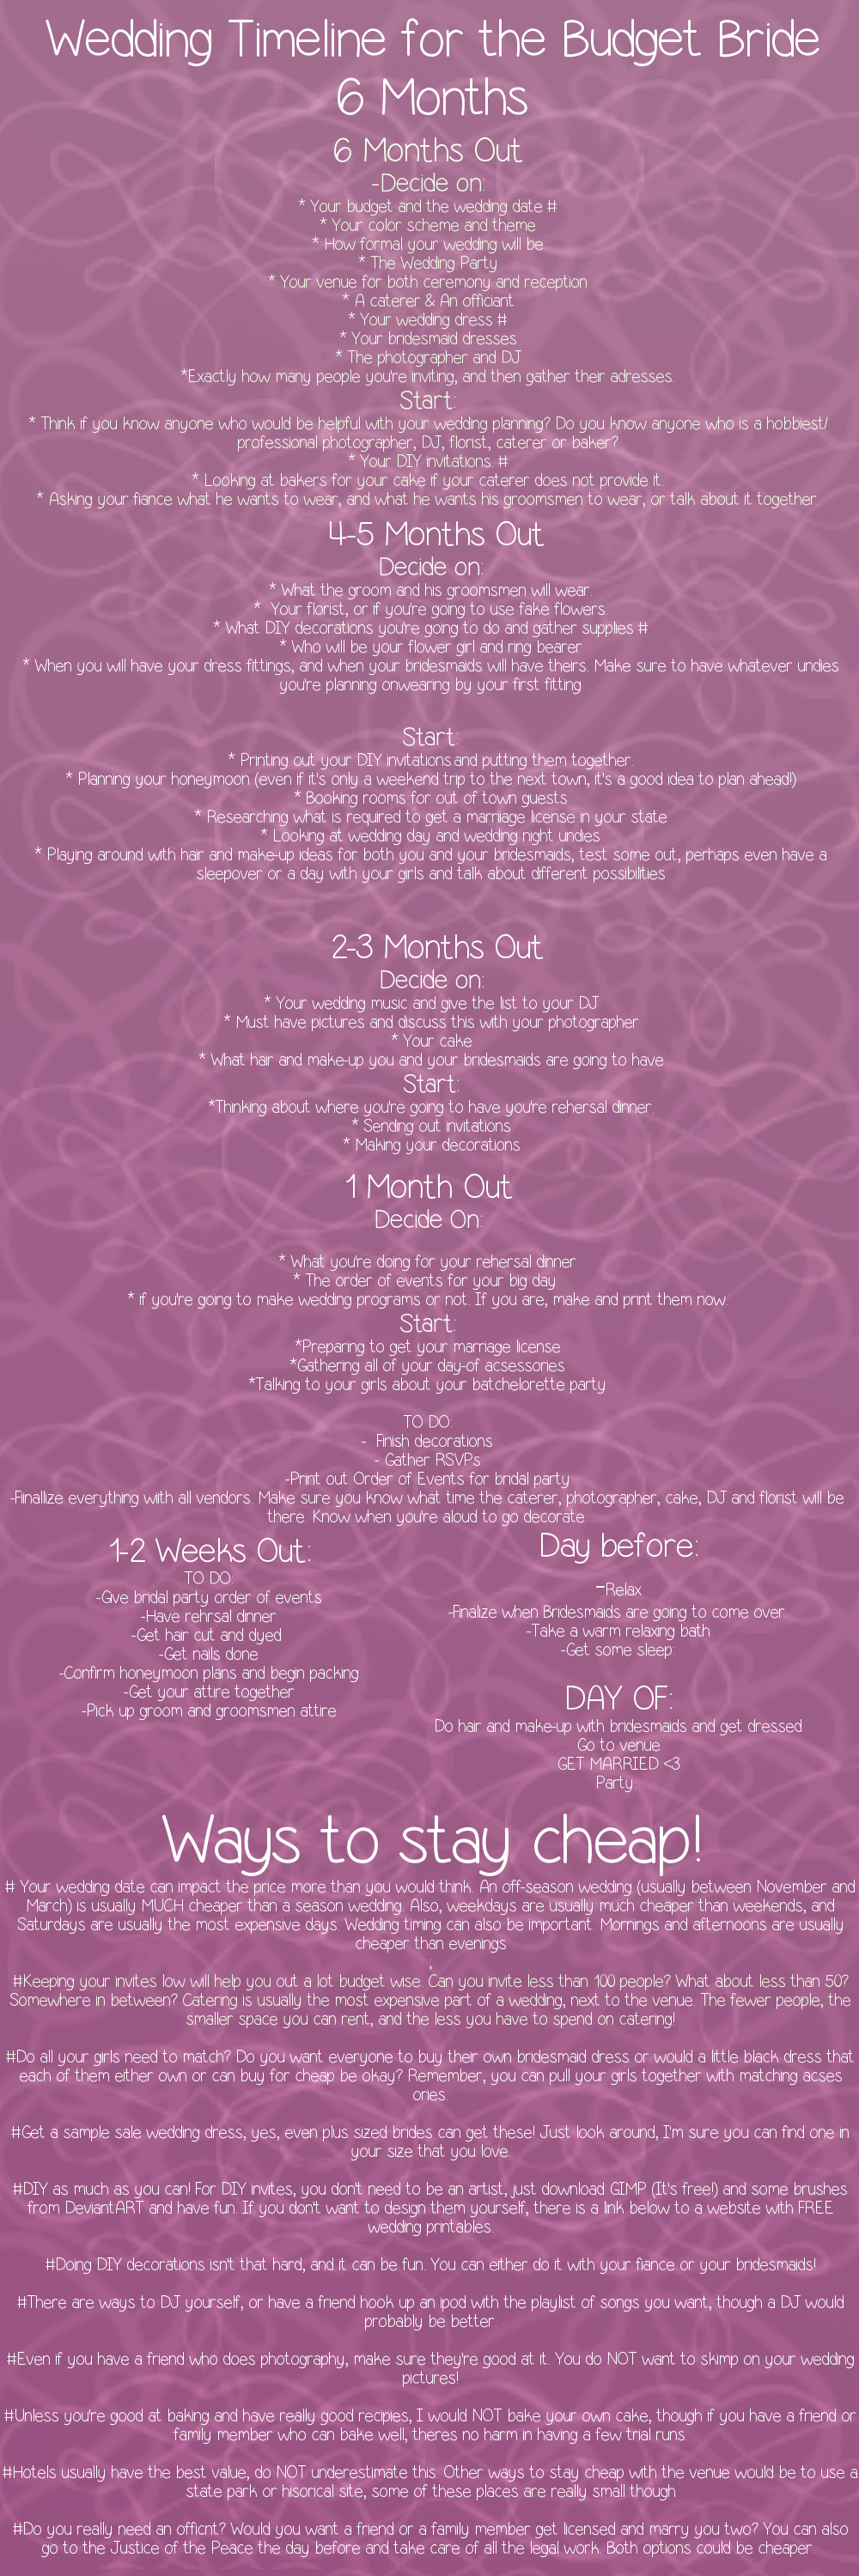 6 month wedding timeline for the budget bride wedding timeline 6